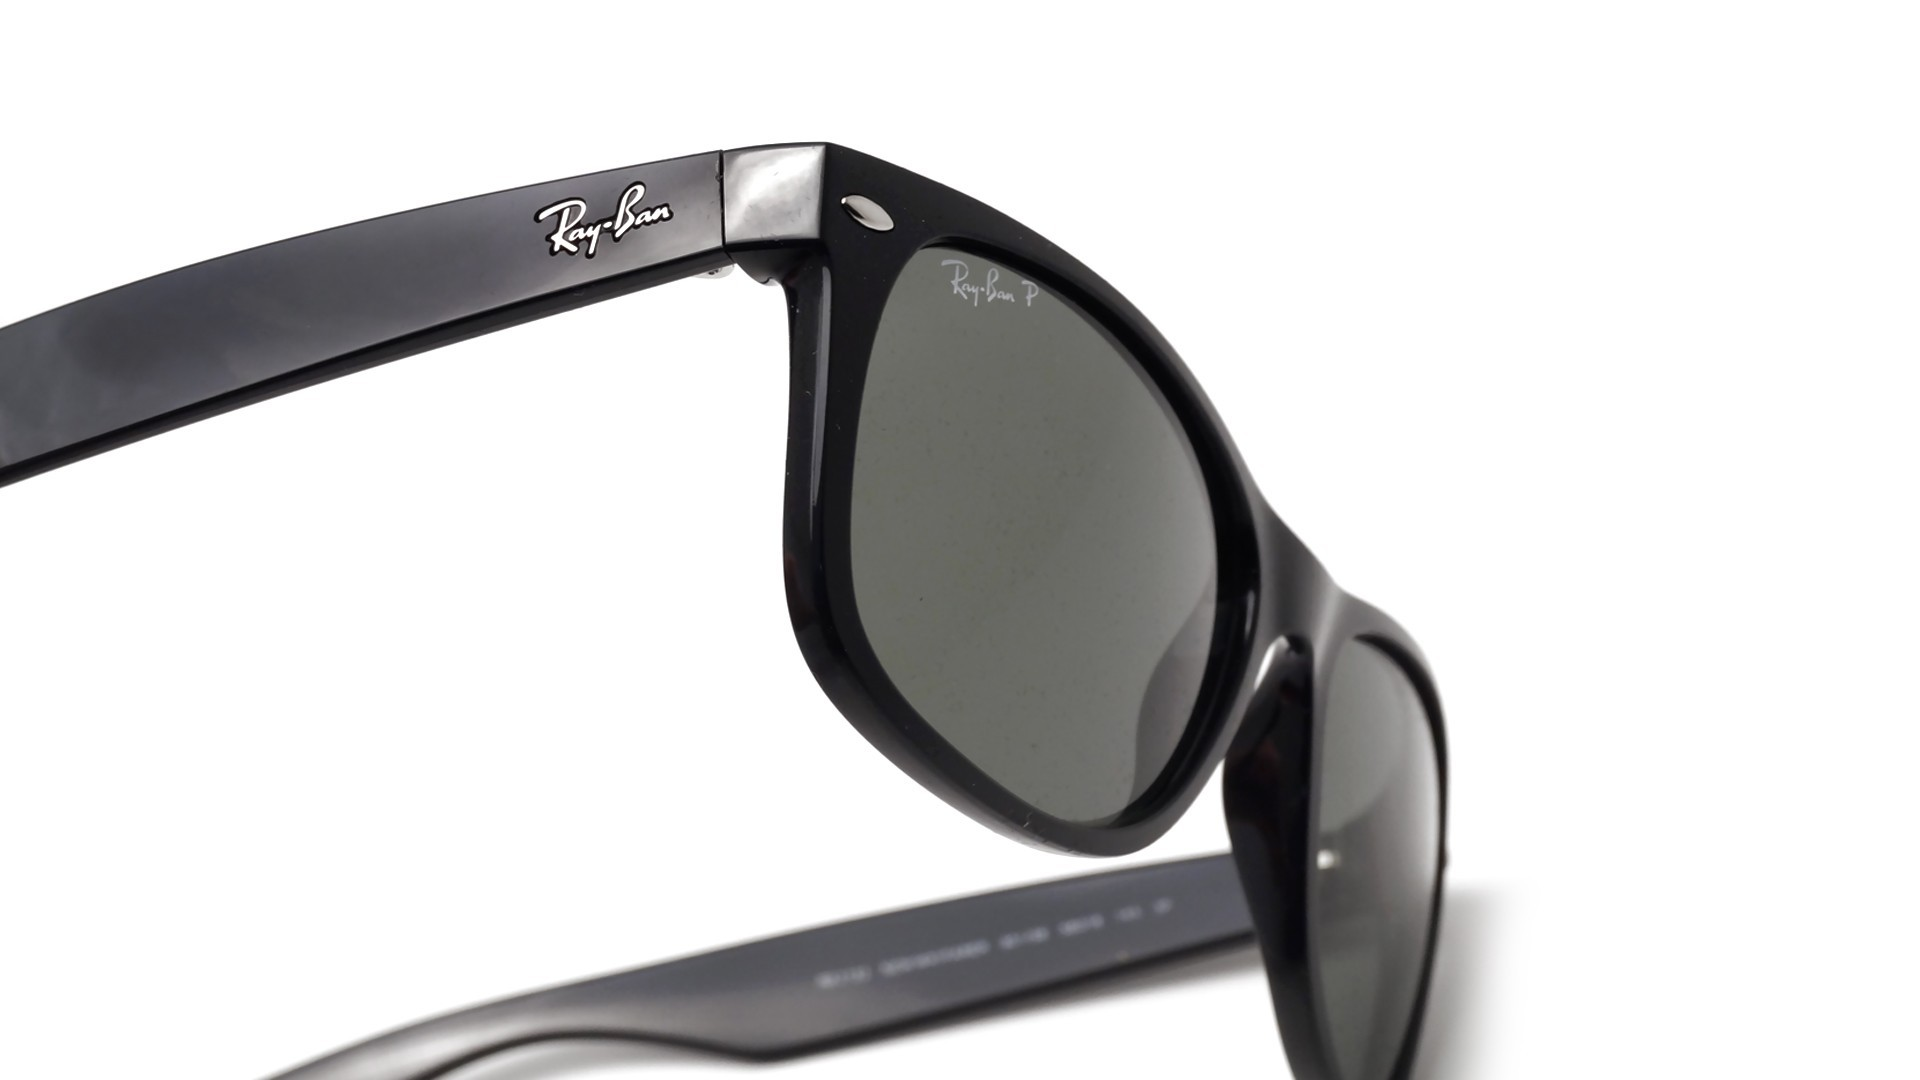 1f10a44cdc9 Ray Ban Sunglasses Rb2132 Price « One More Soul